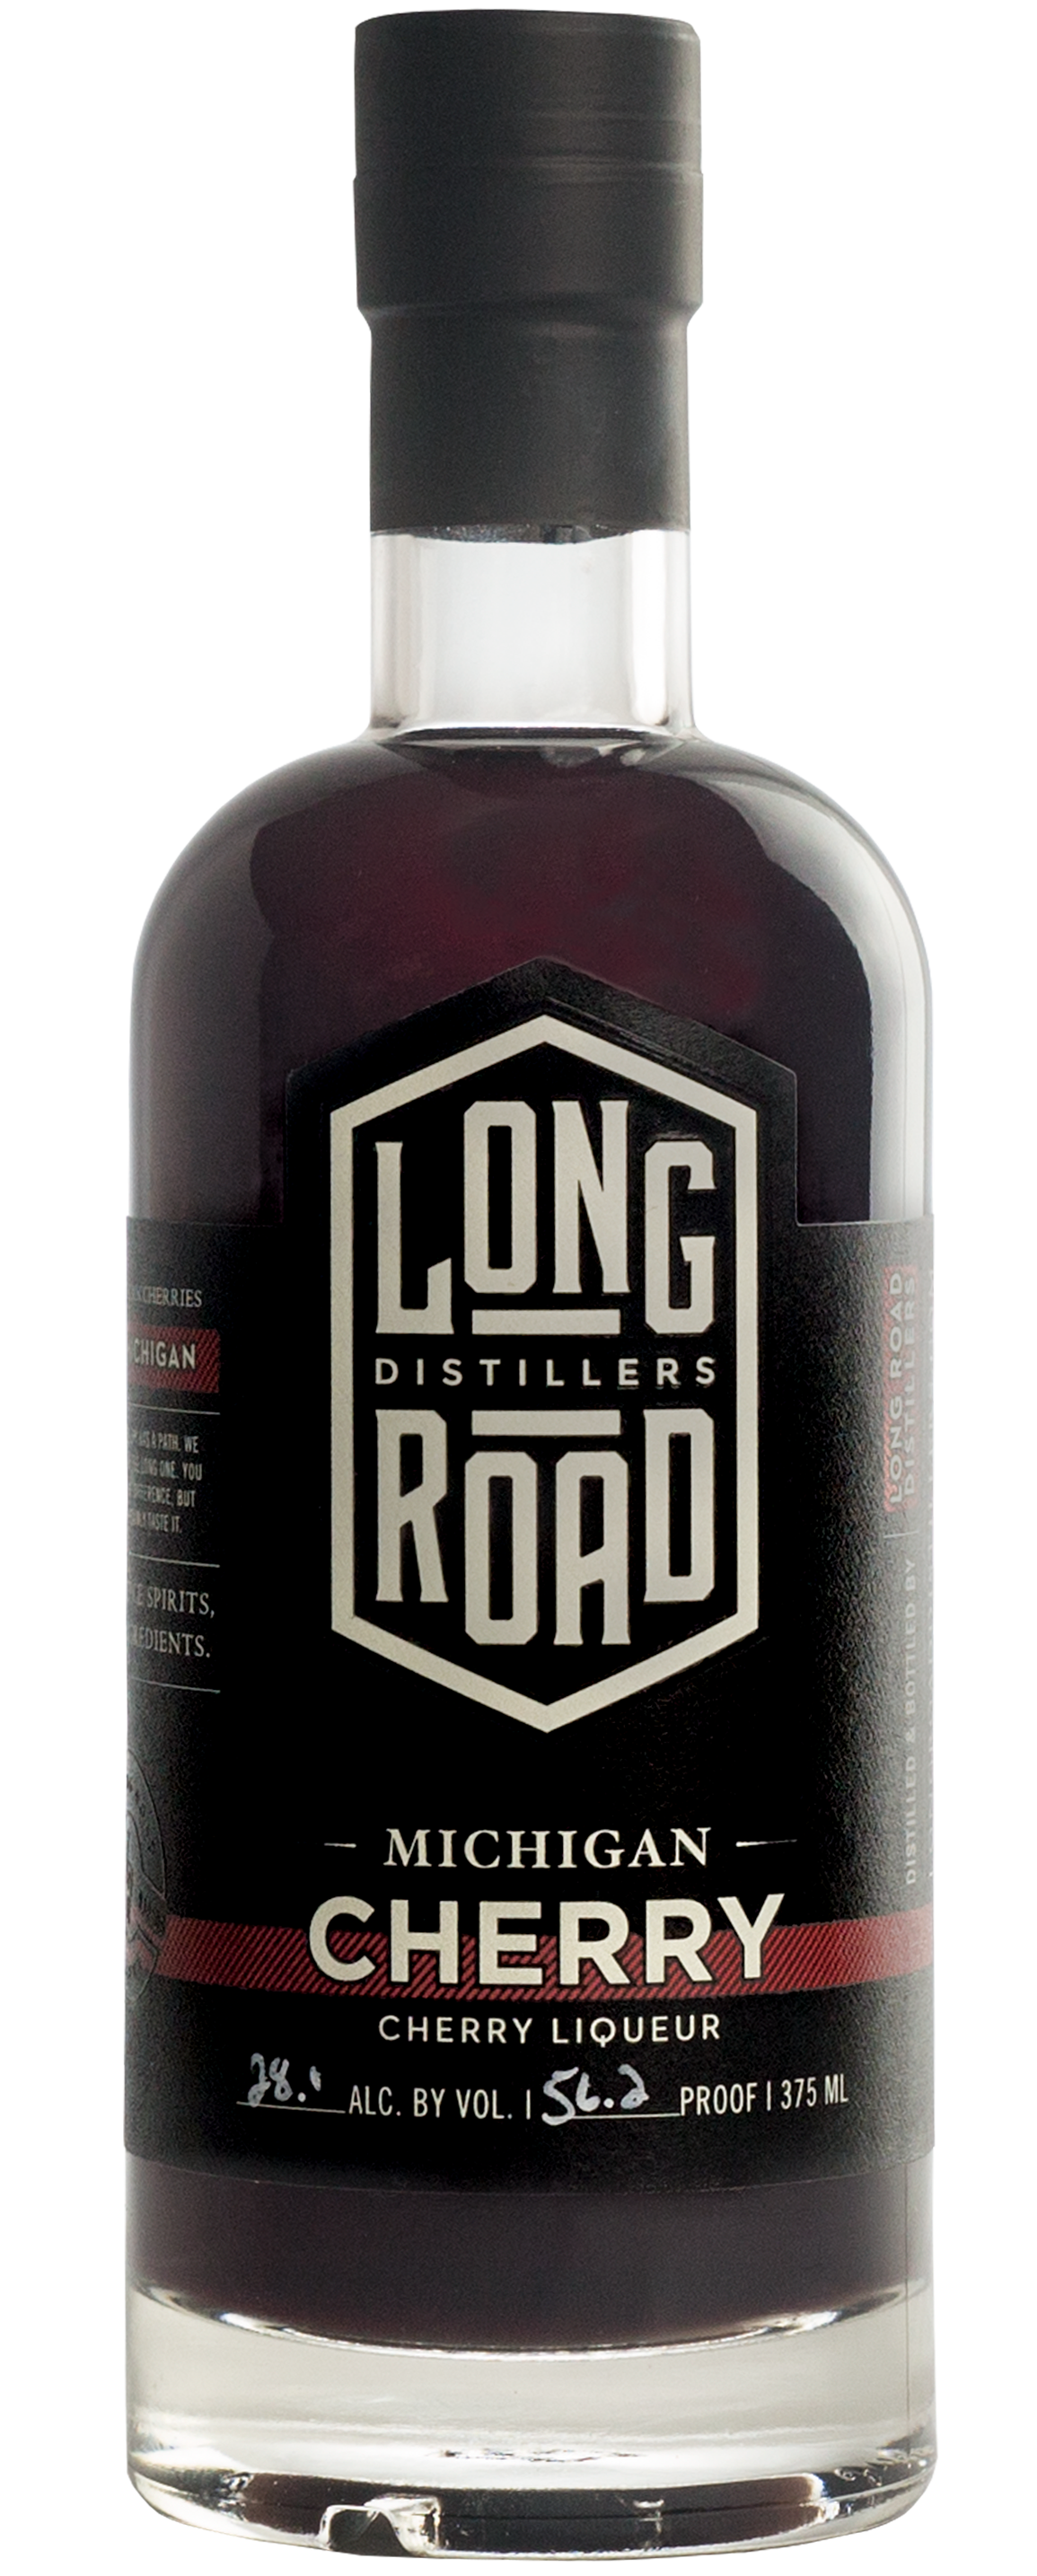 Michigan Cherry Long Road Distillers